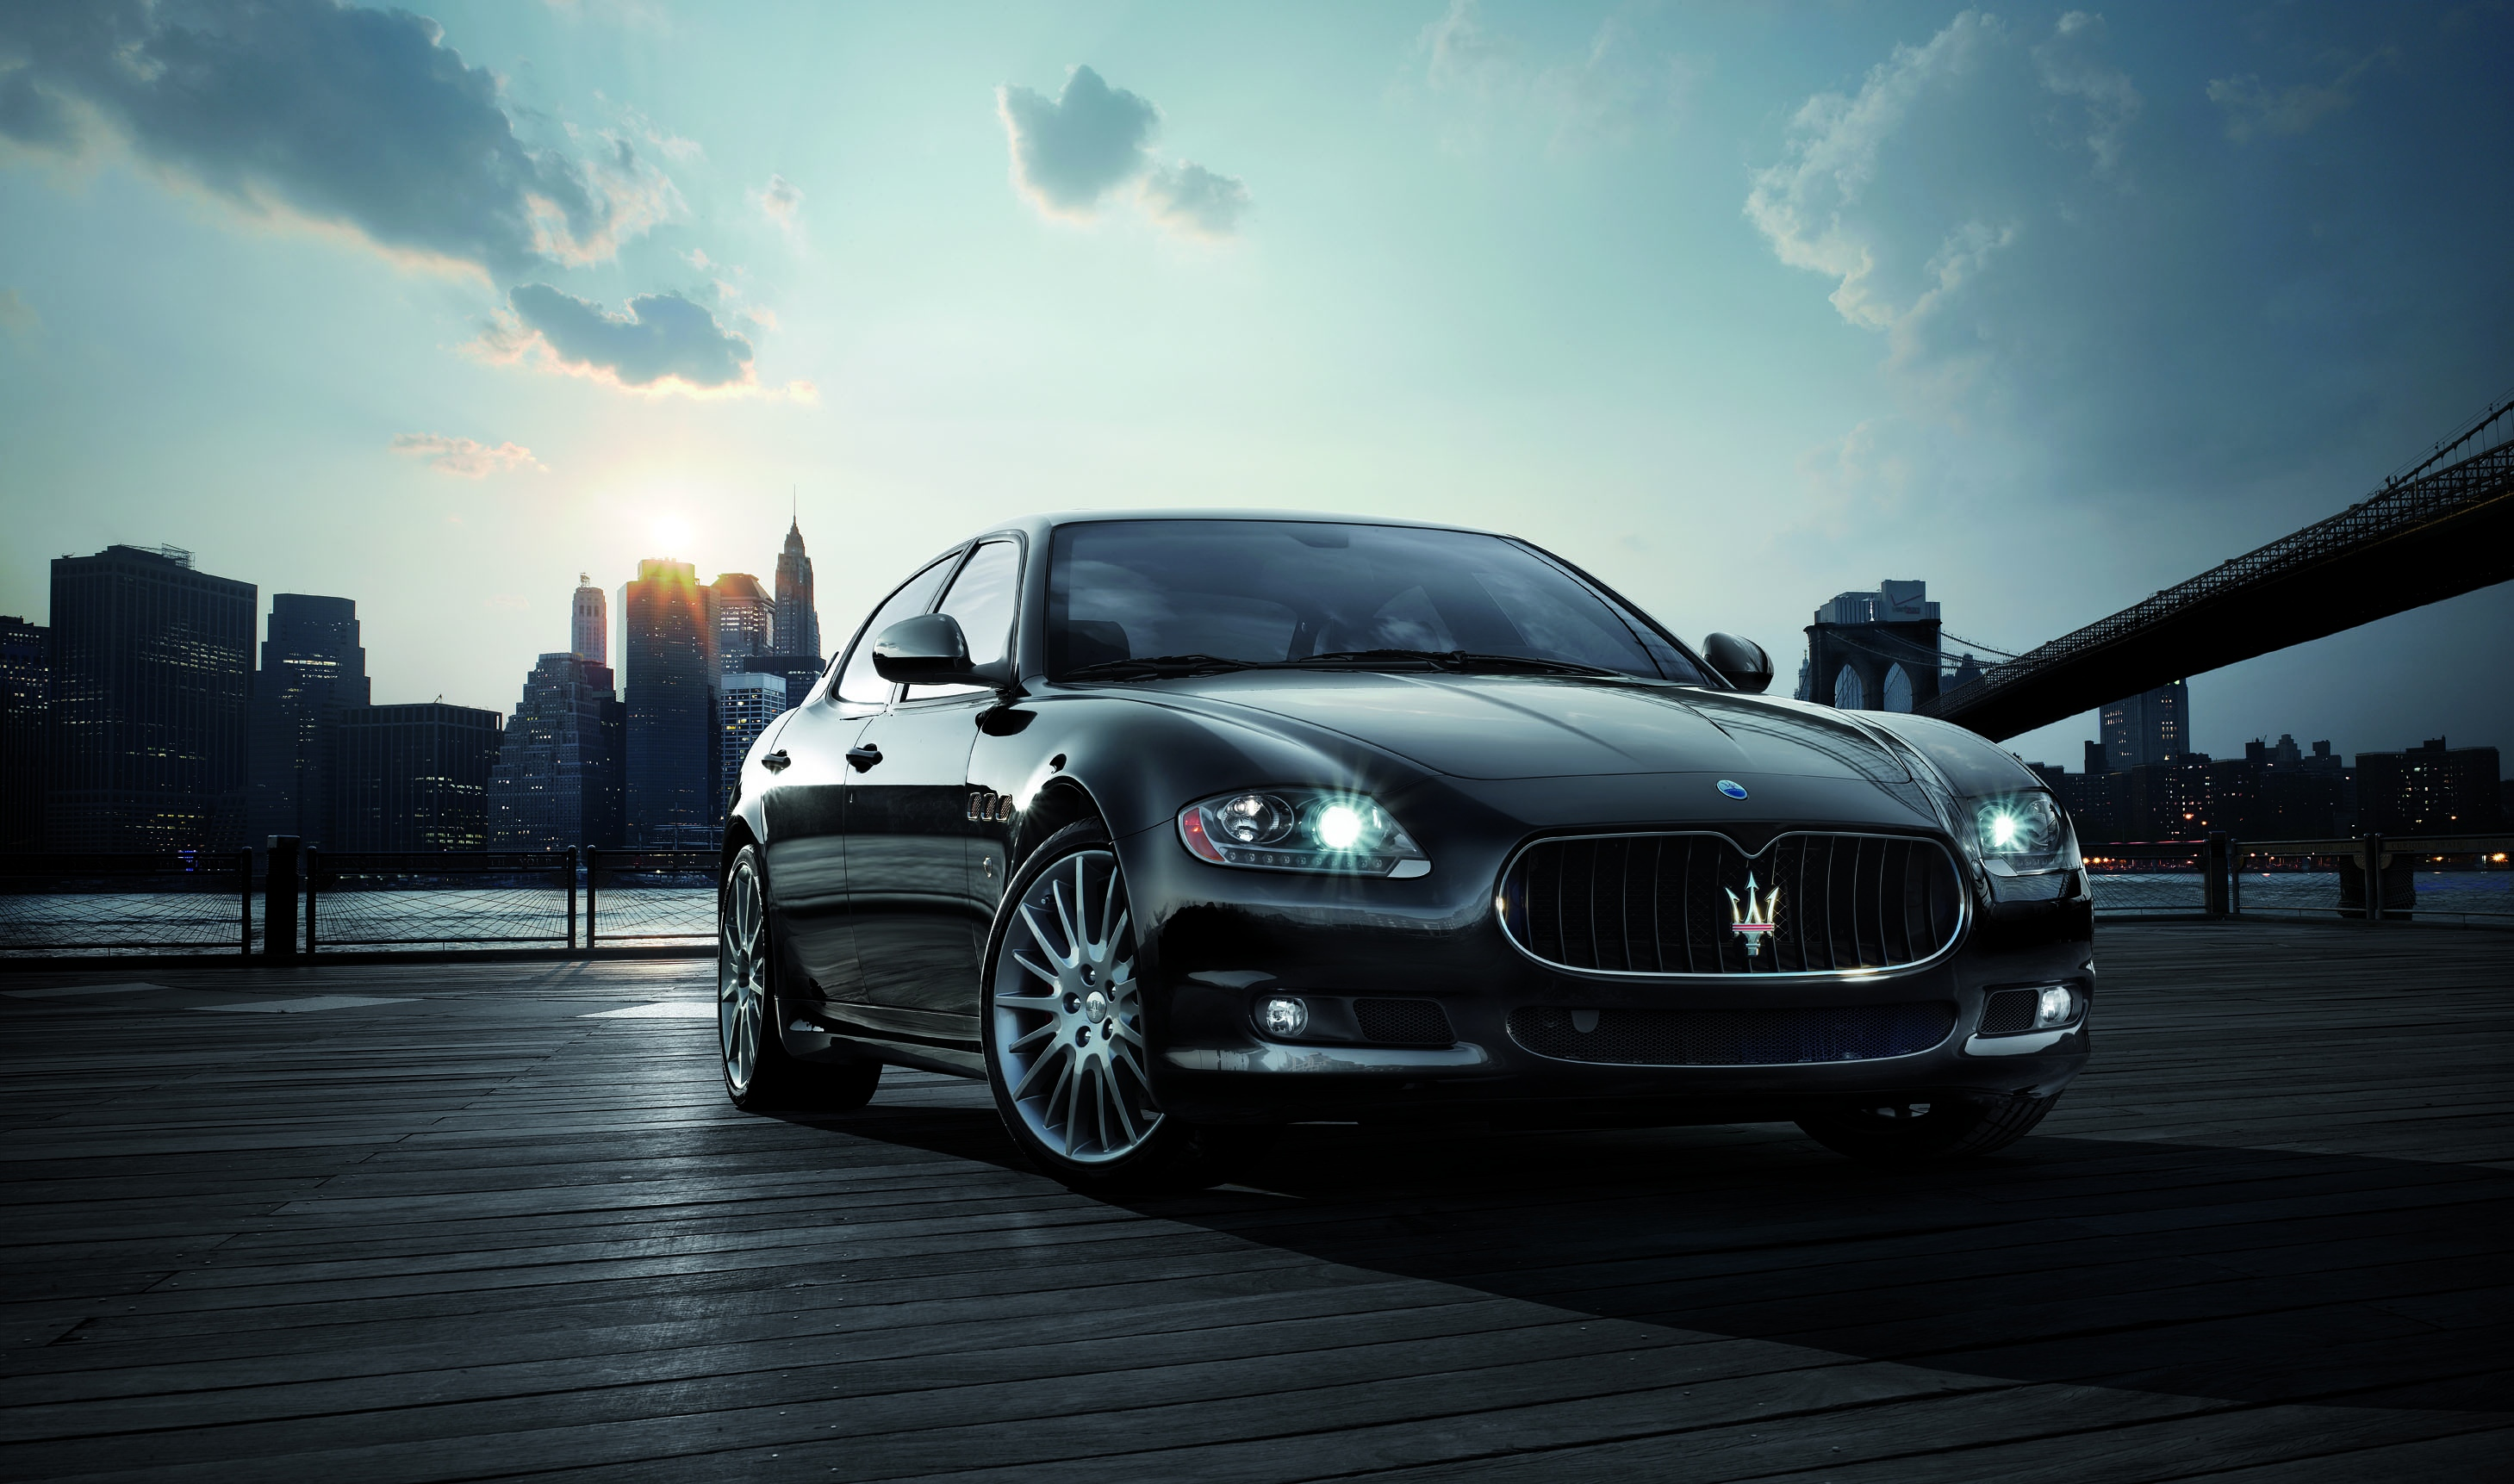 Maserati Quattroporte Sport GT S Best Luxury Car Award